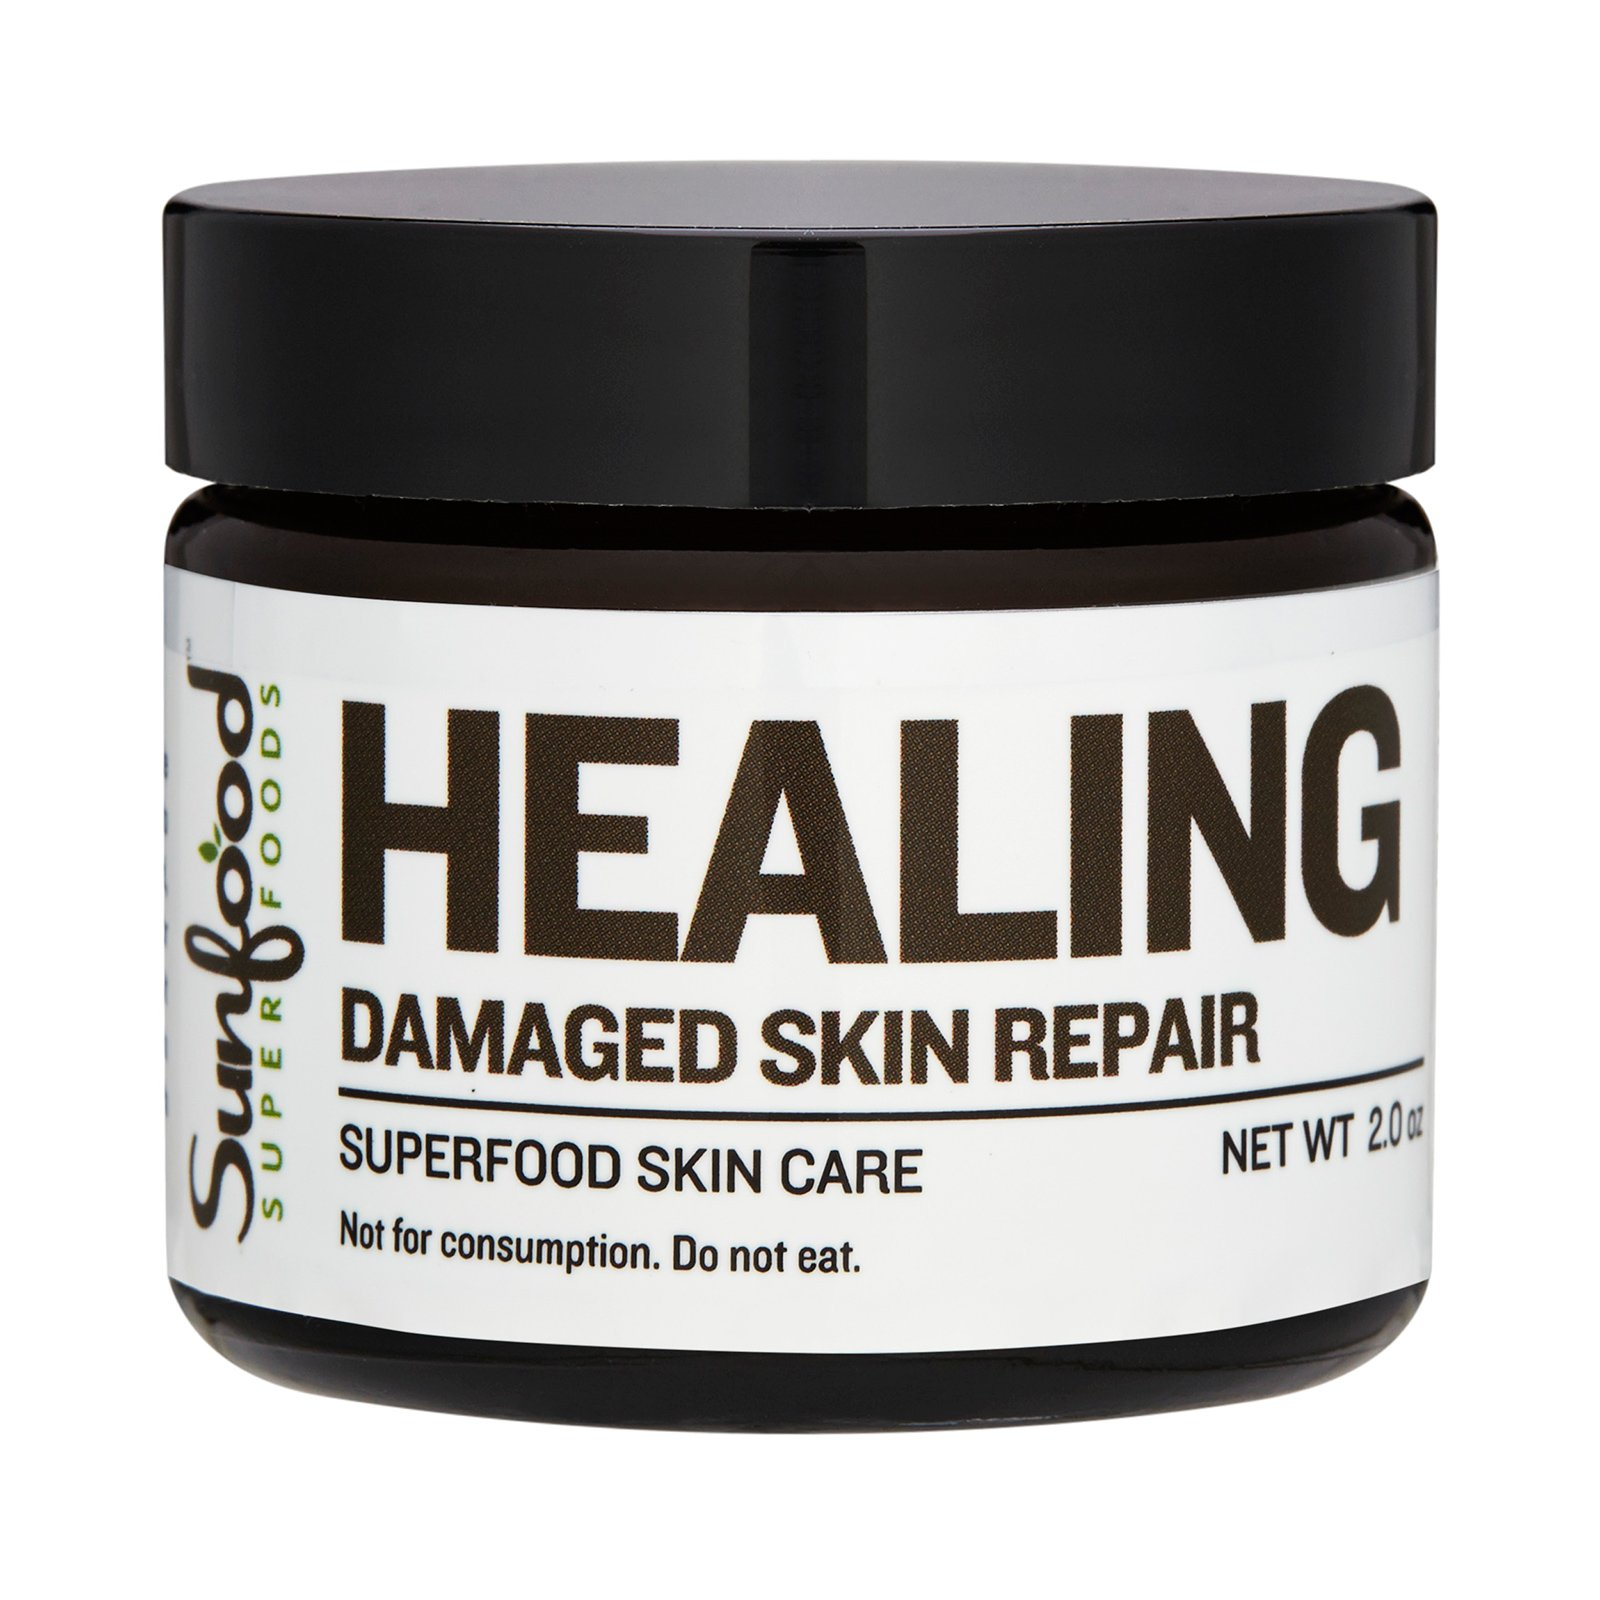 Healing Damaged Skin Repair 2oz,